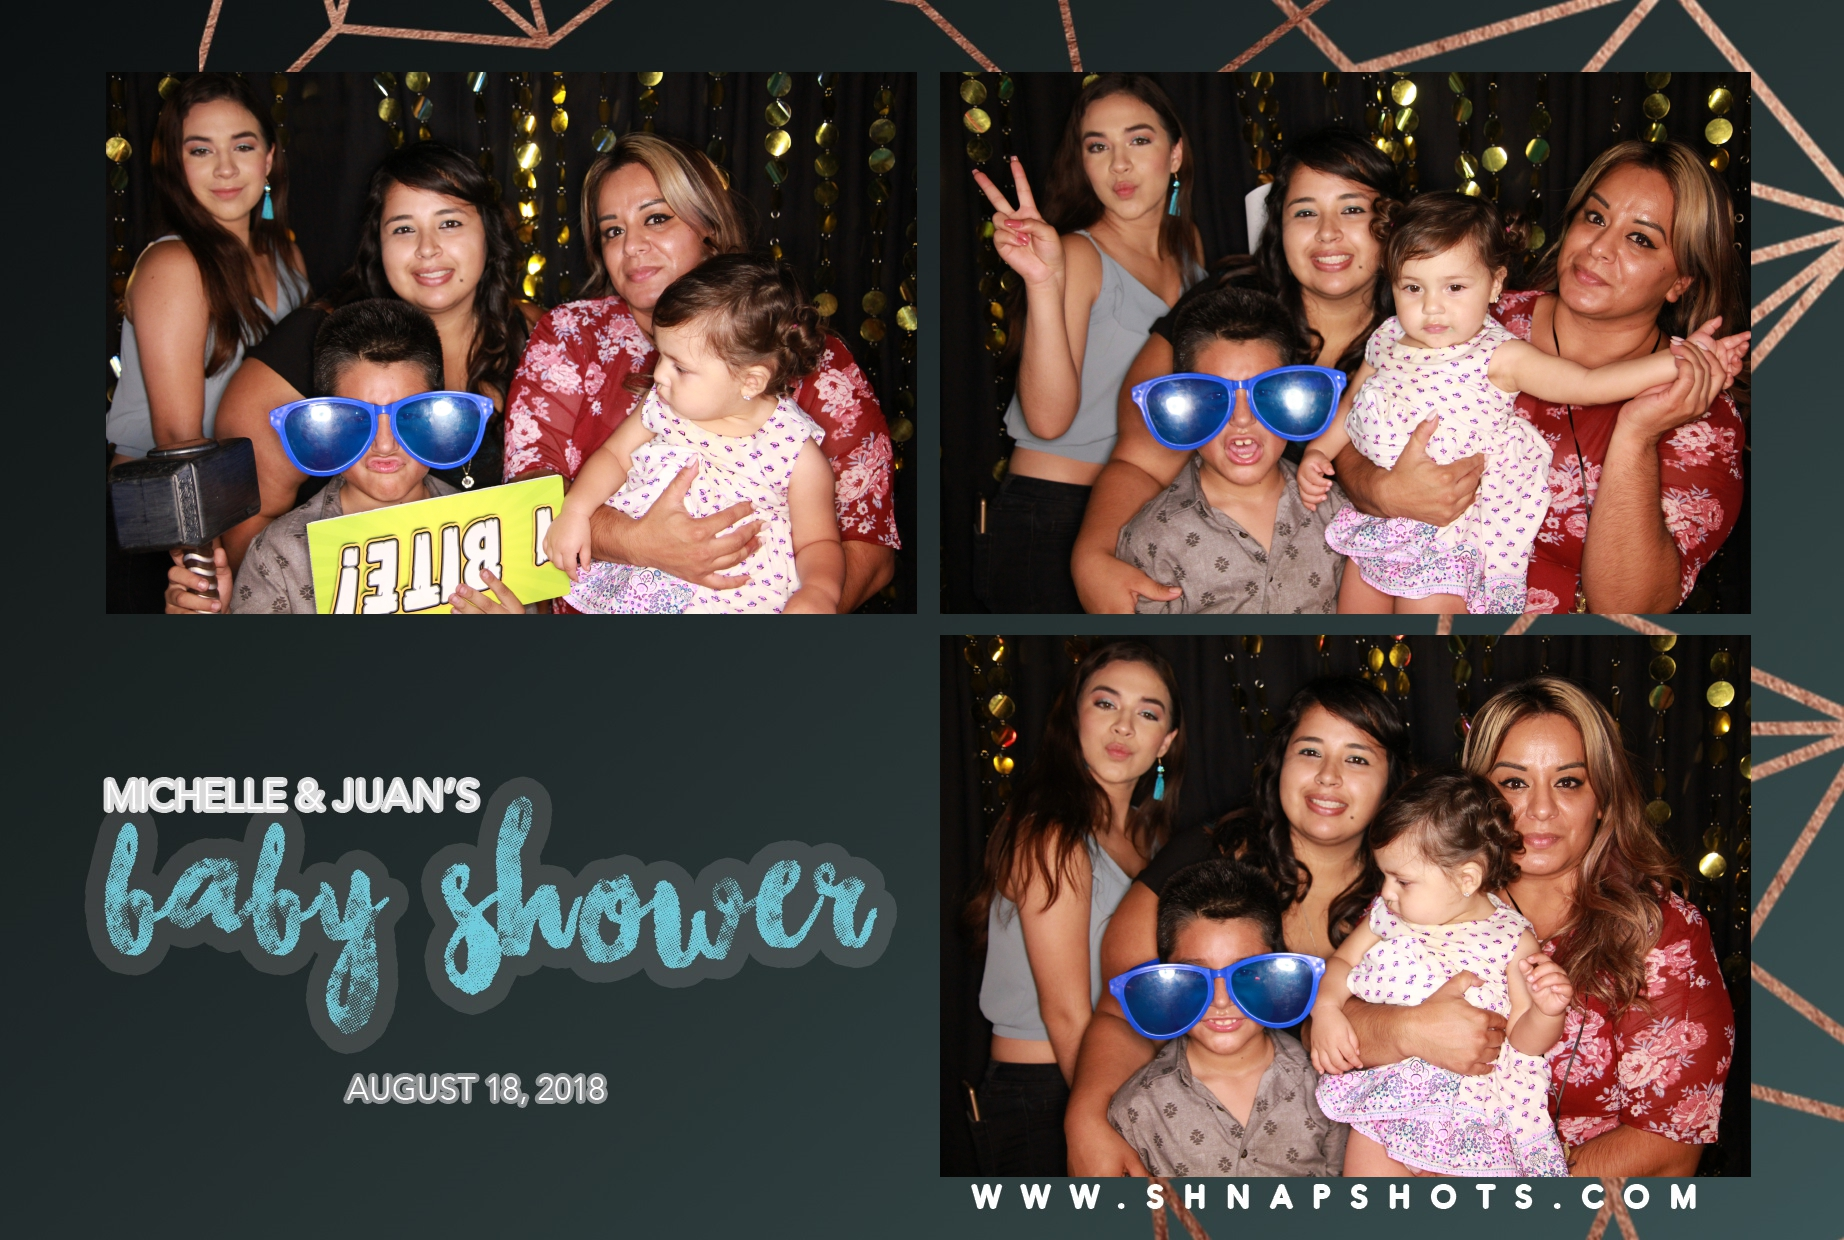 Michelle & Juan's Baby Shower